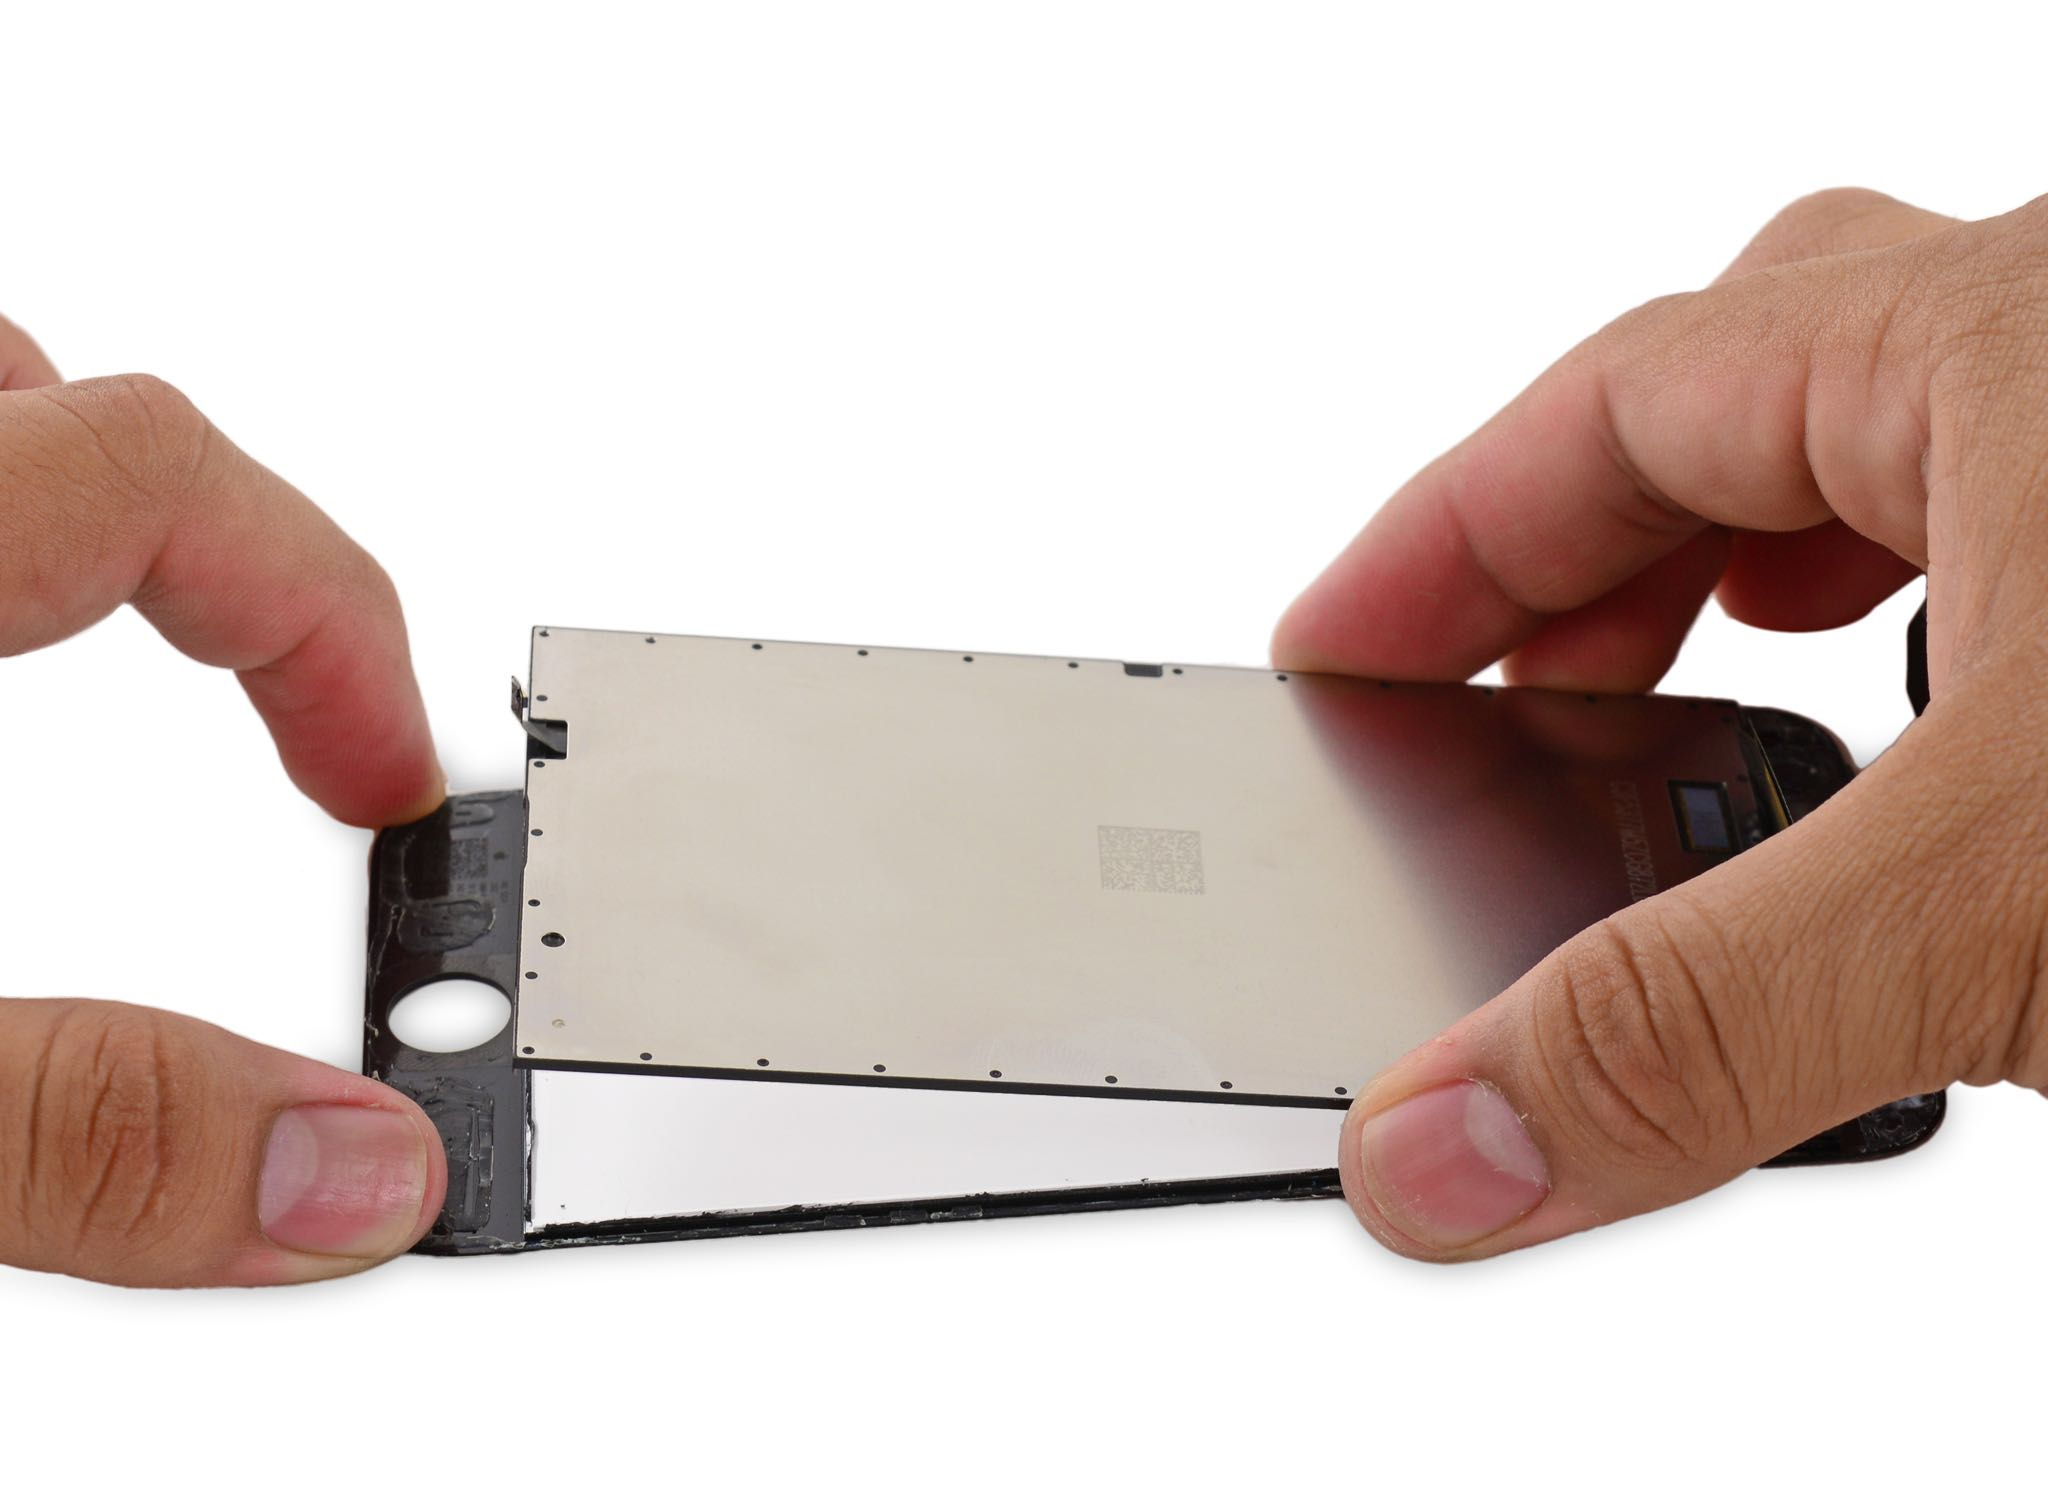 iPhone 6s Display iFixit teardown teaser 001